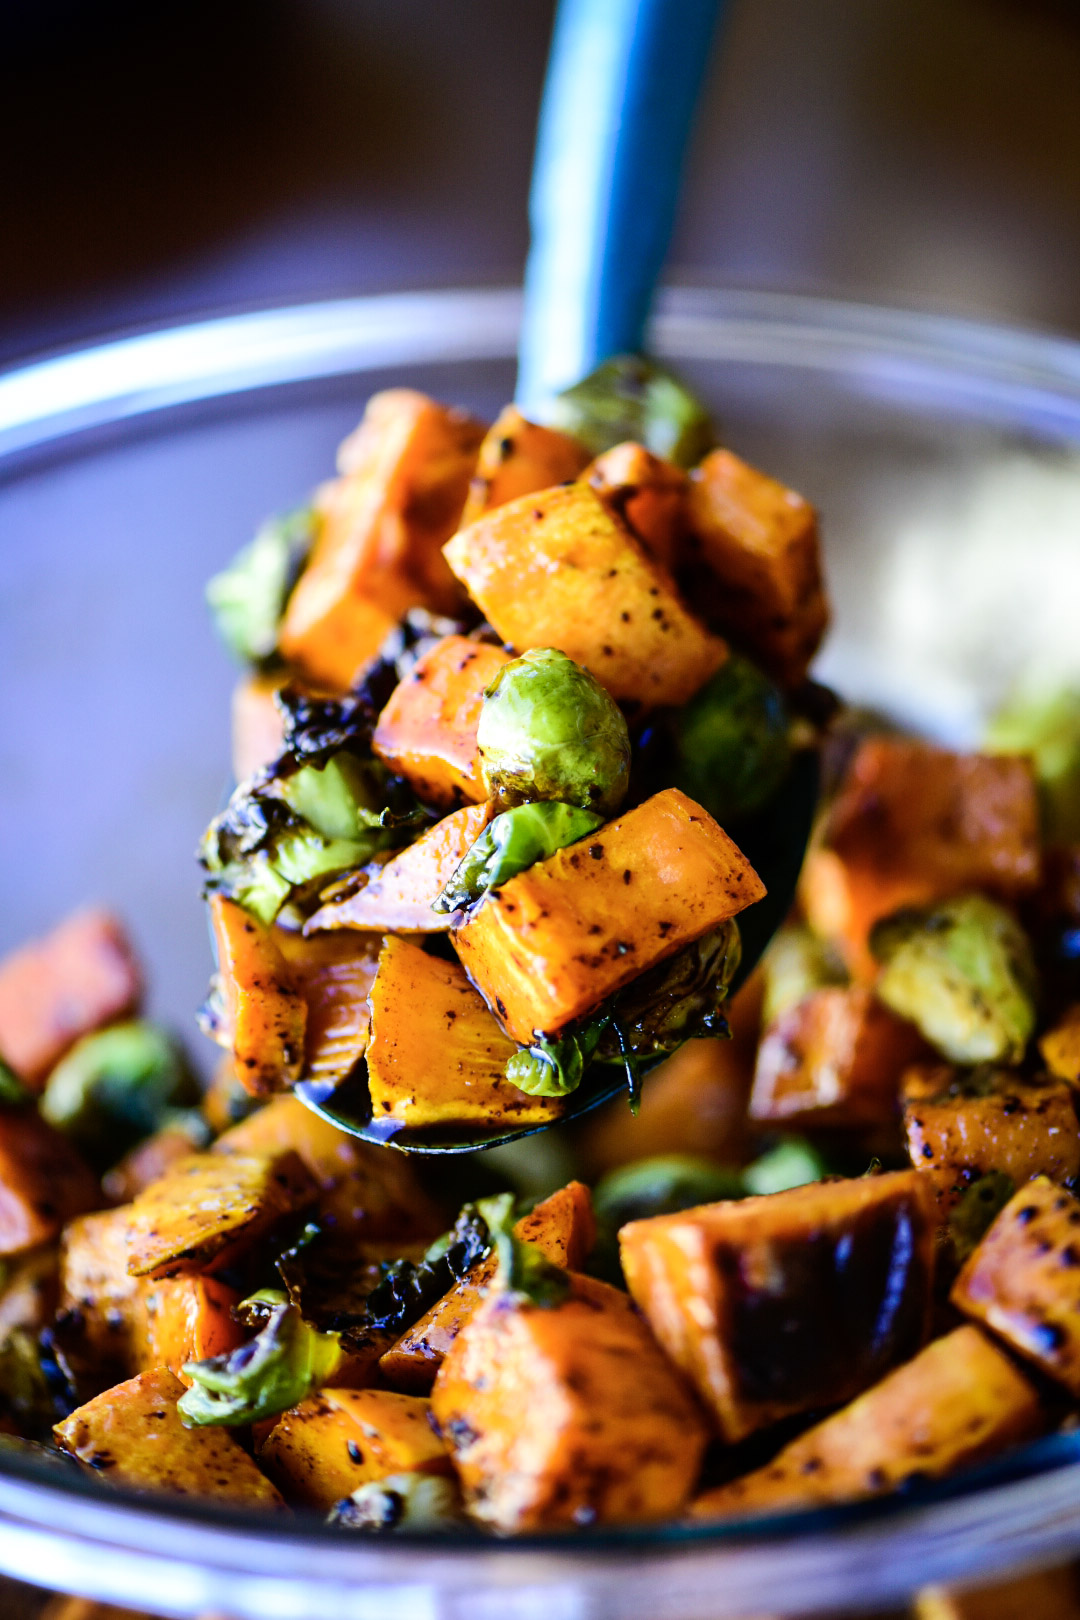 tossing sweet potatoes and Brussels sprouts in honey-balsamic sauce